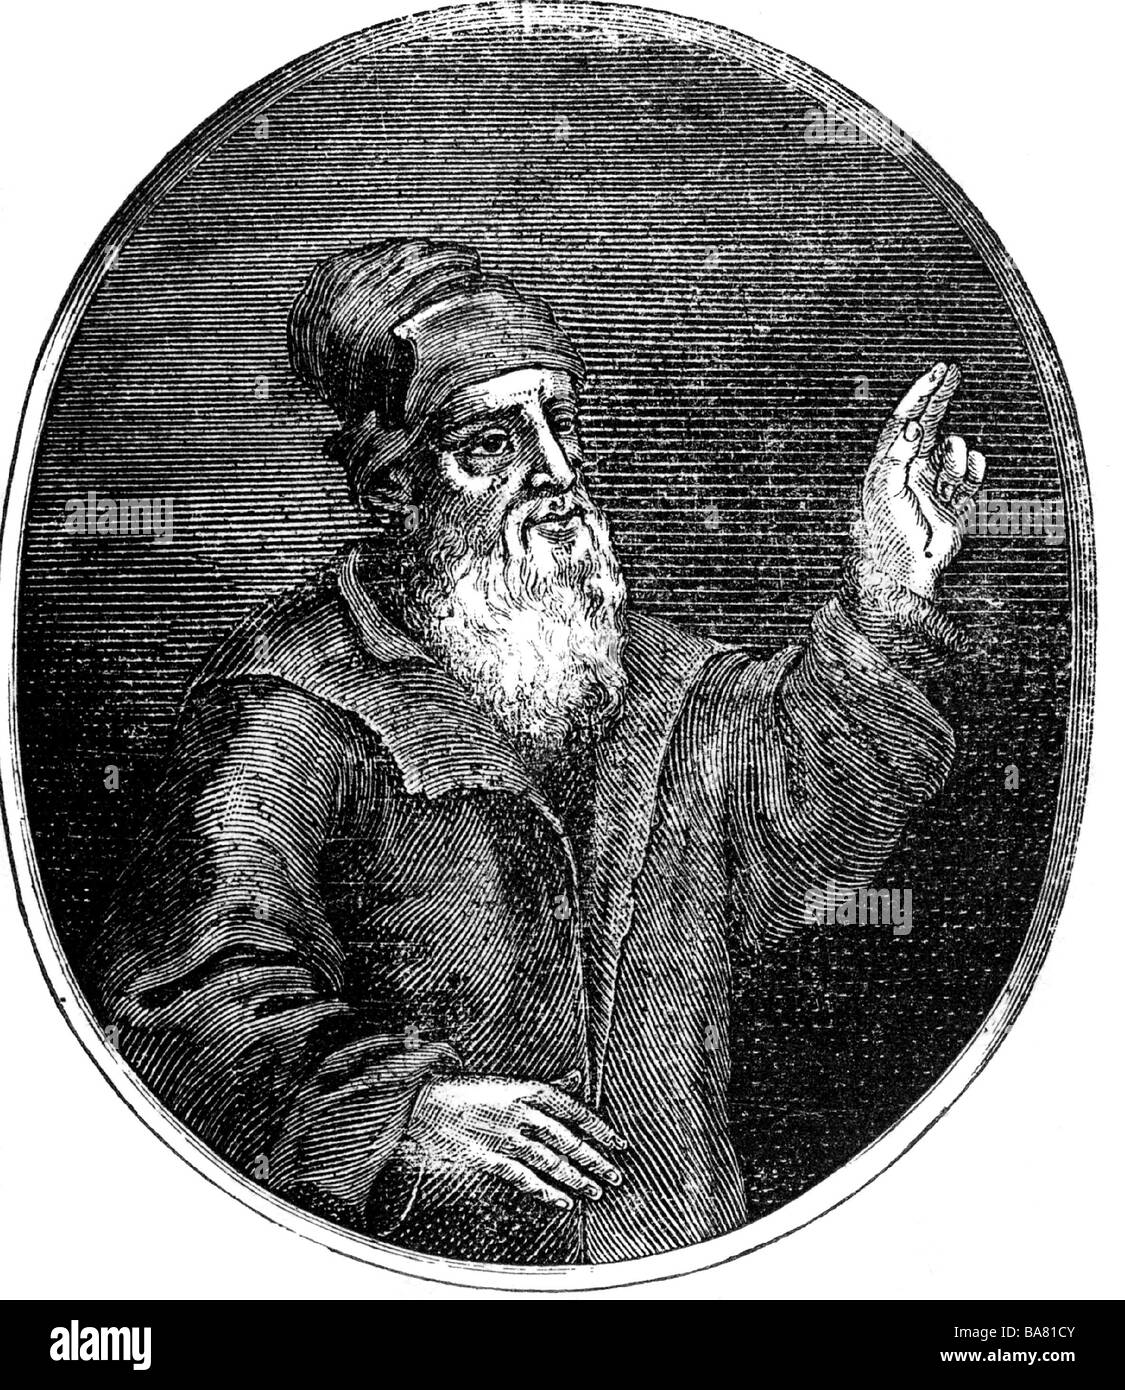 Schedel, Hartmann, 13.2.1440 - 28.11.1514, German physician, humanist, historian, half length, oval, wood engraving, - Stock Image